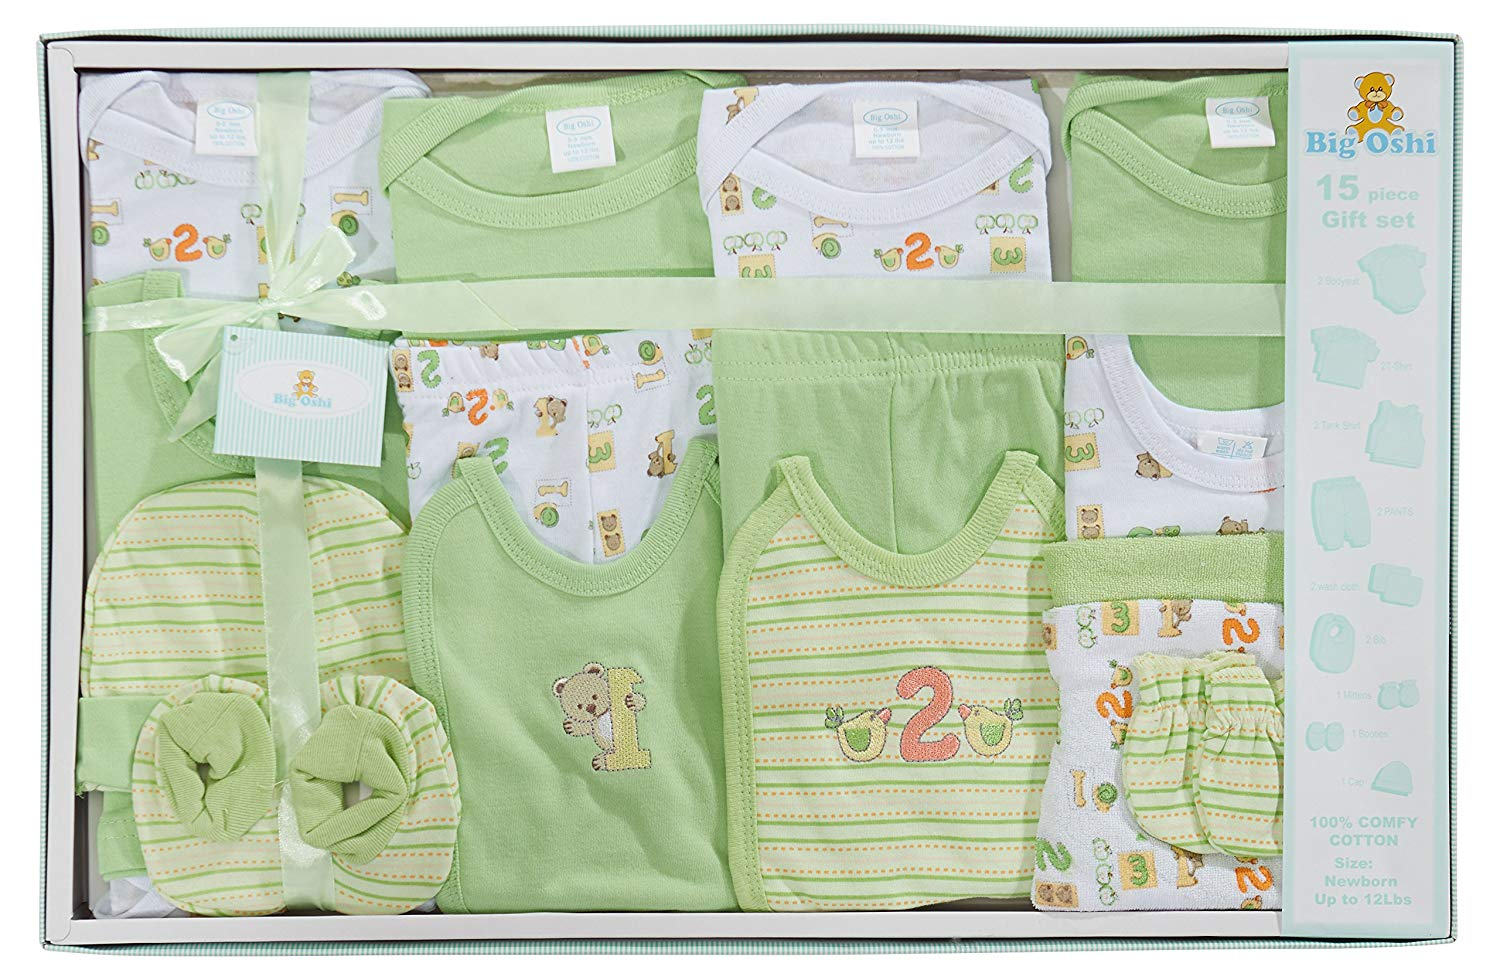 Big Oshi 15 Piece Layette Newborn Baby Gift Set for Boys - Great Baby Shower or Registry Gift Box to Welcome a New Arrival - All Essentials Including: Bodysuits, Shirts, Pants, Bibs, and More, Green